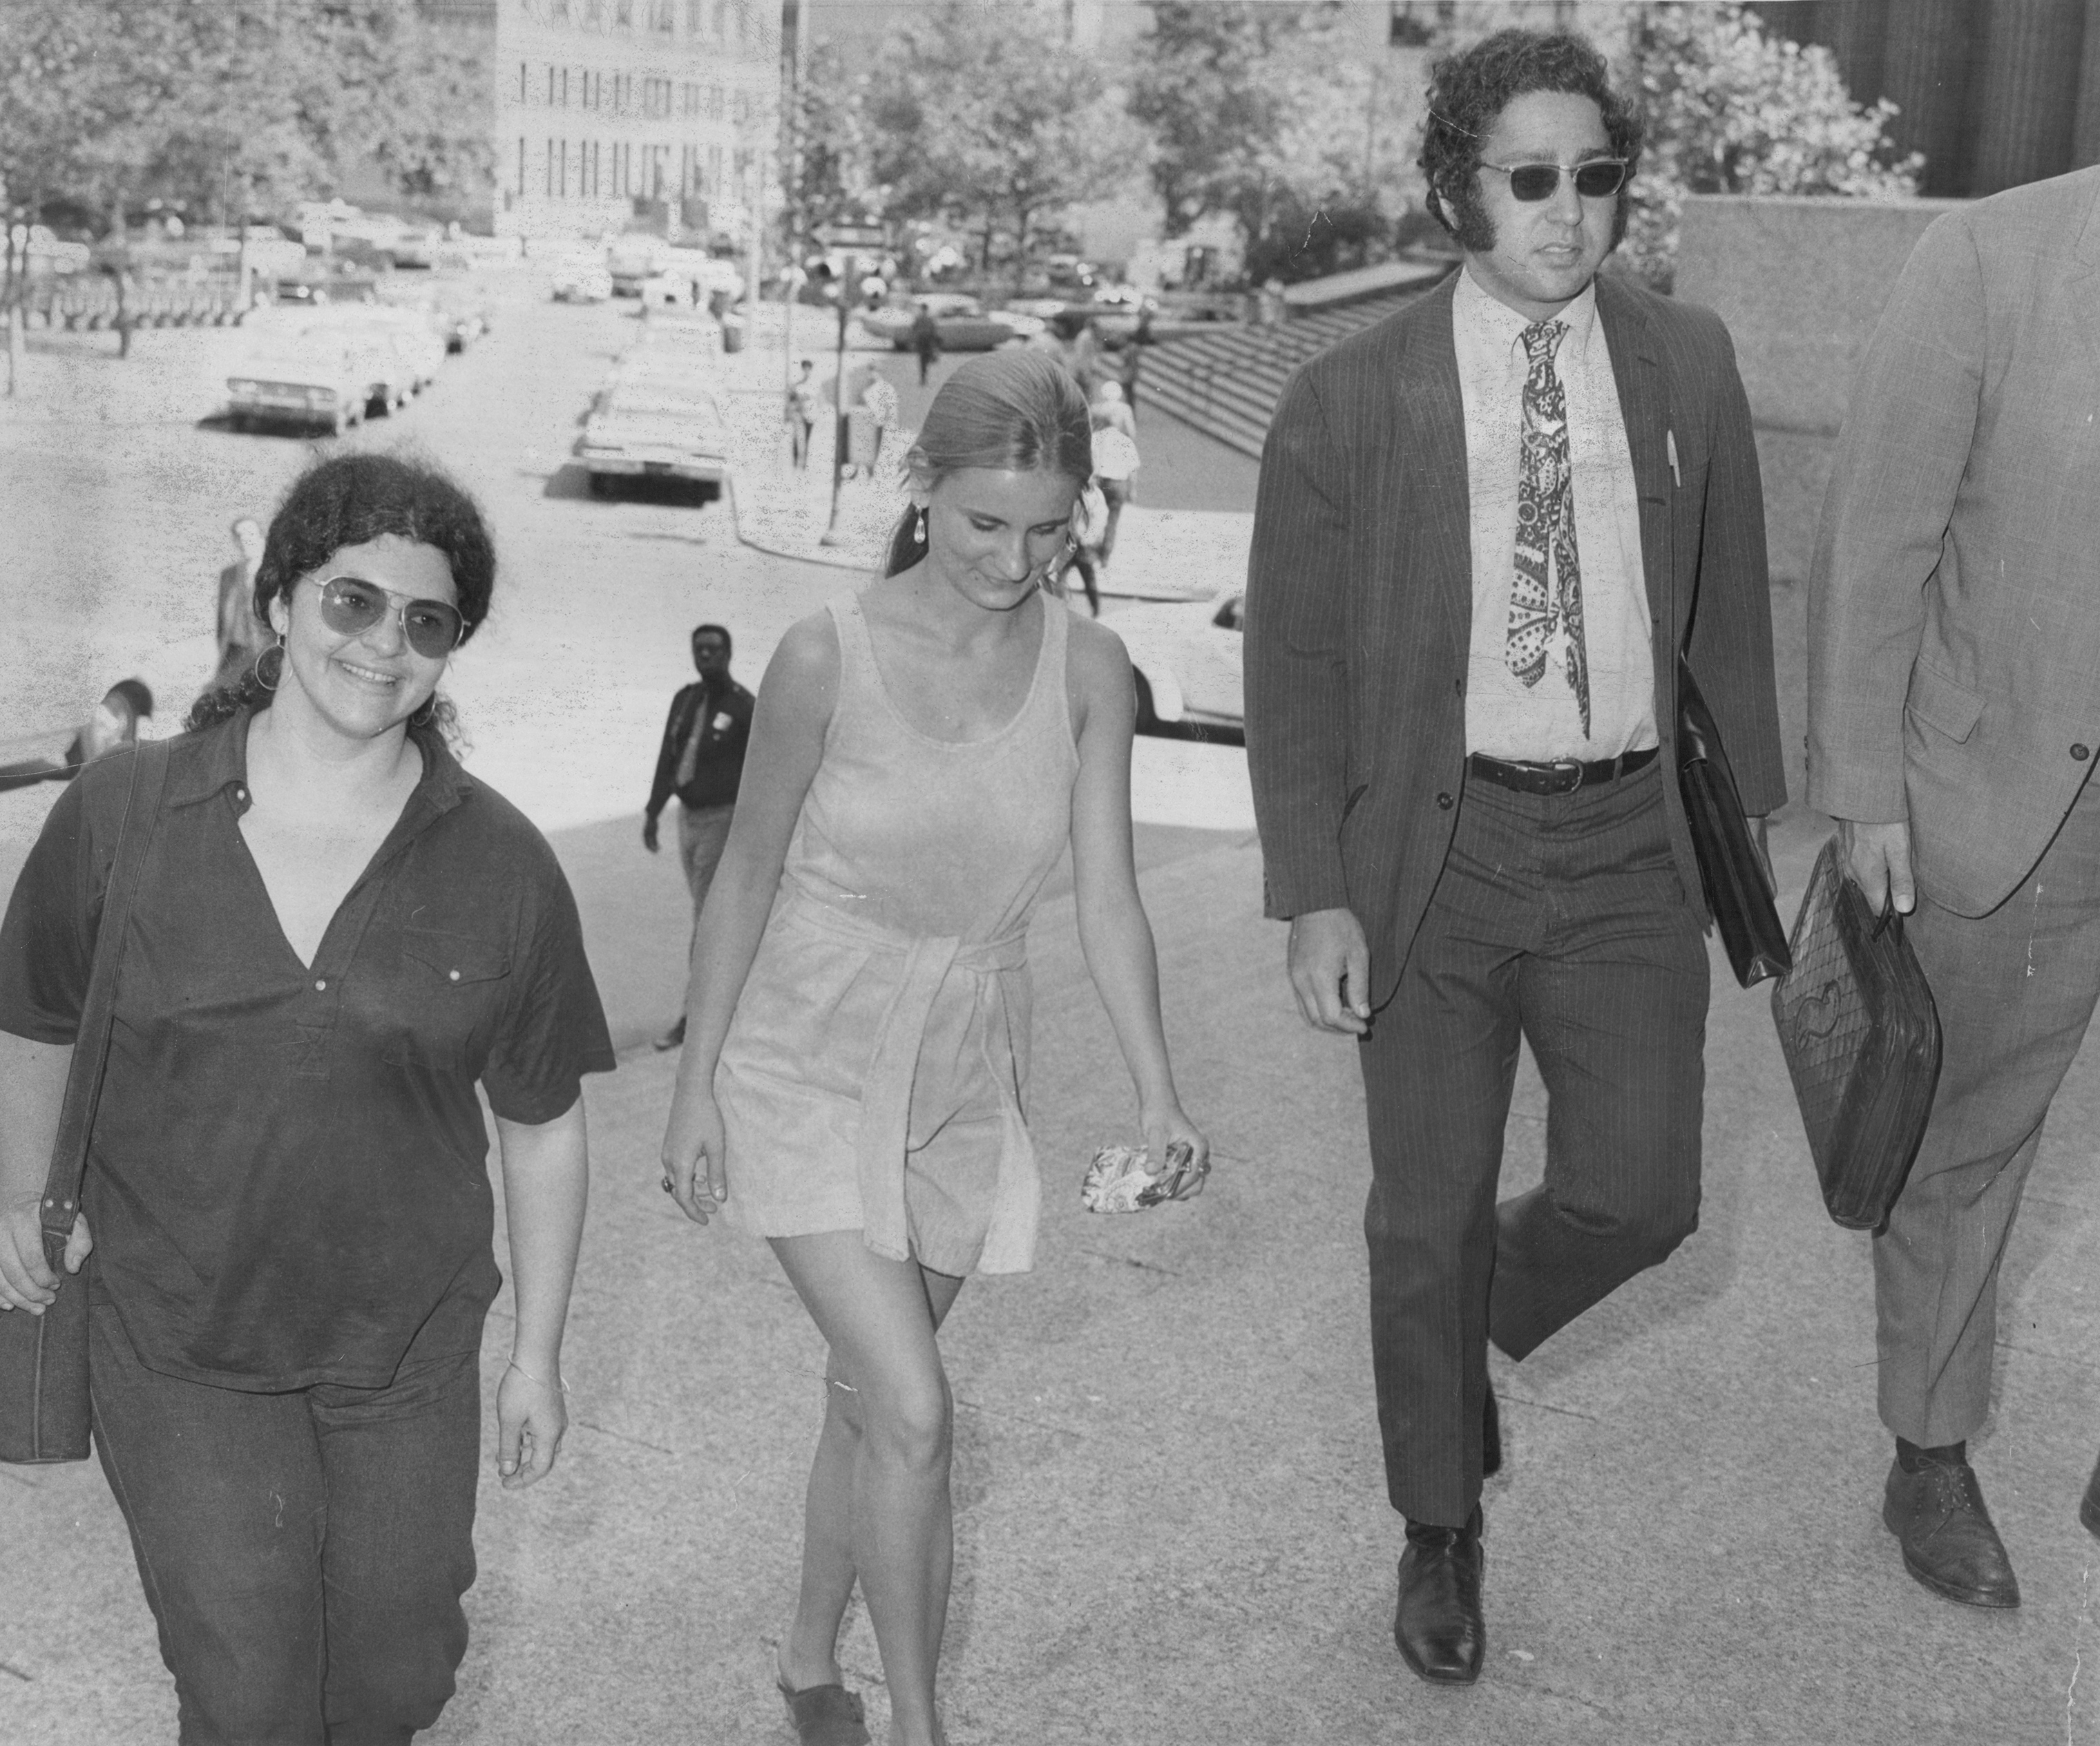 Attorney Lewis M. Steel, right, arrives at federal court in lower Manhattan on Aug. 3, 1970.